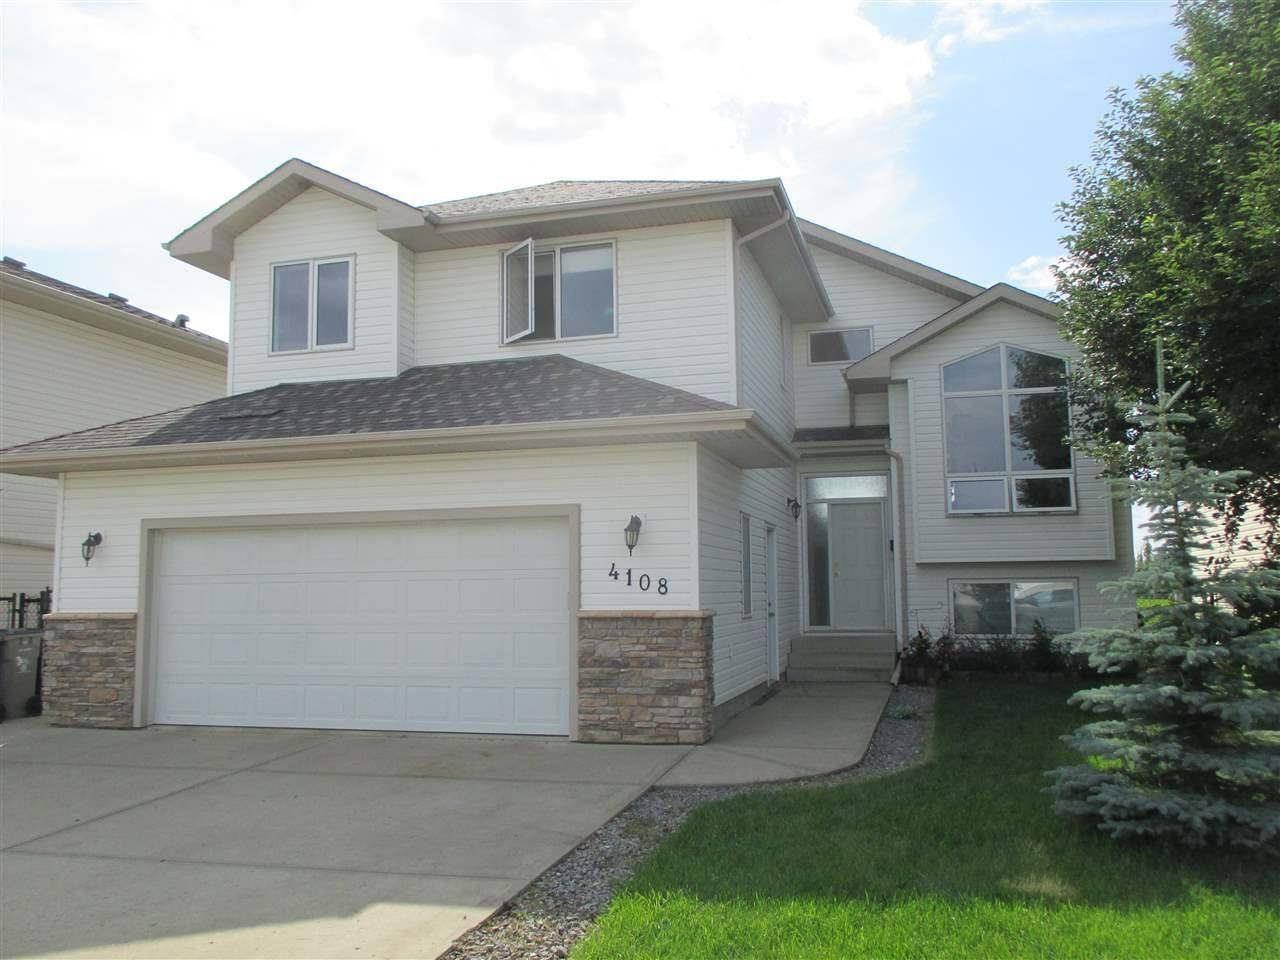 House for sale at 4108 59 St Beaumont Alberta - MLS: E4165937